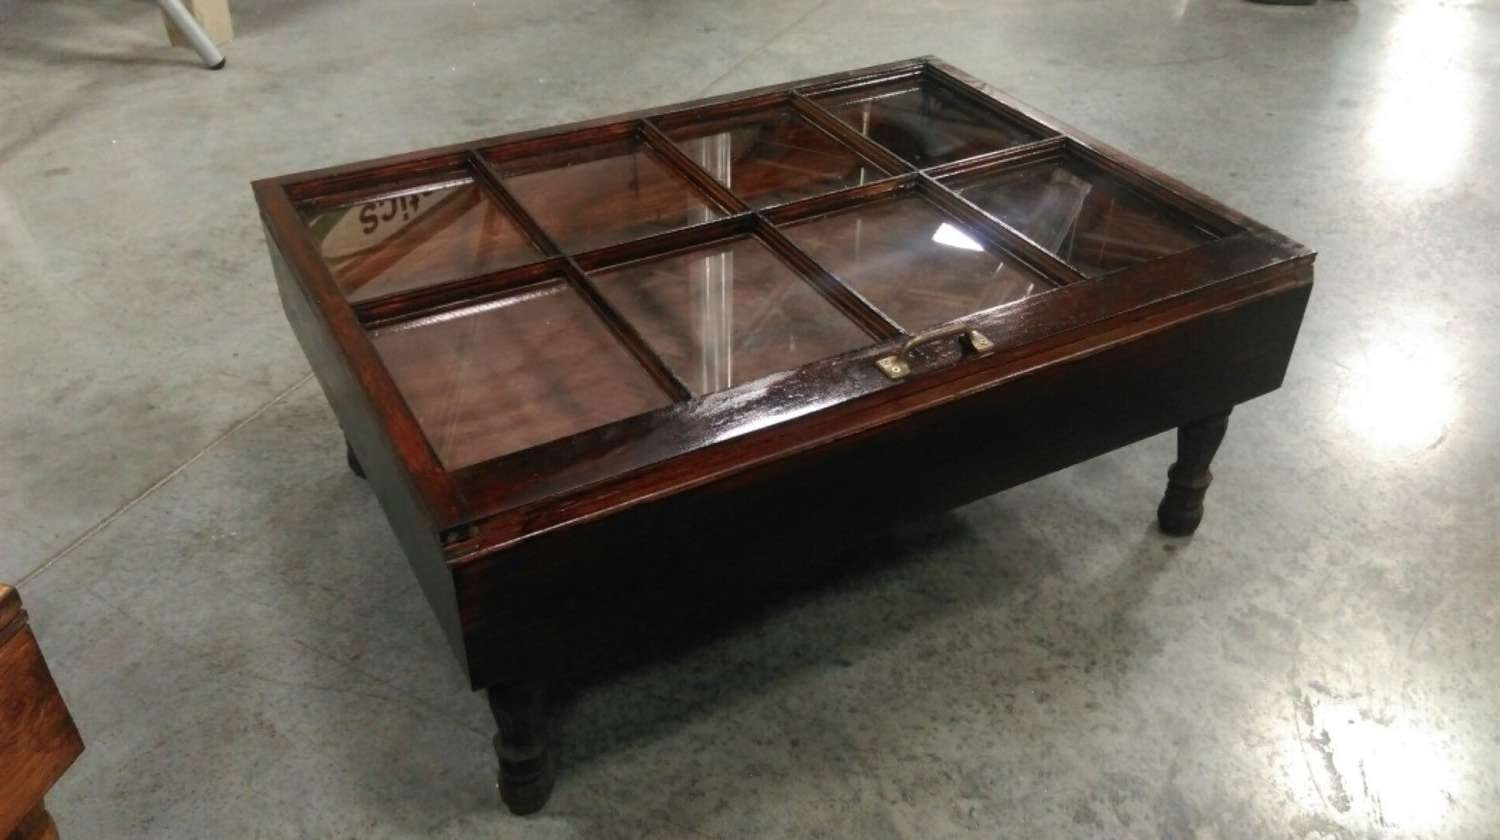 Widely Used Coffee Tables With Glass Top Display Drawer With Regard To Coffee Table R E H Kennedy Military Glass Top Display Shadow Box (View 7 of 20)